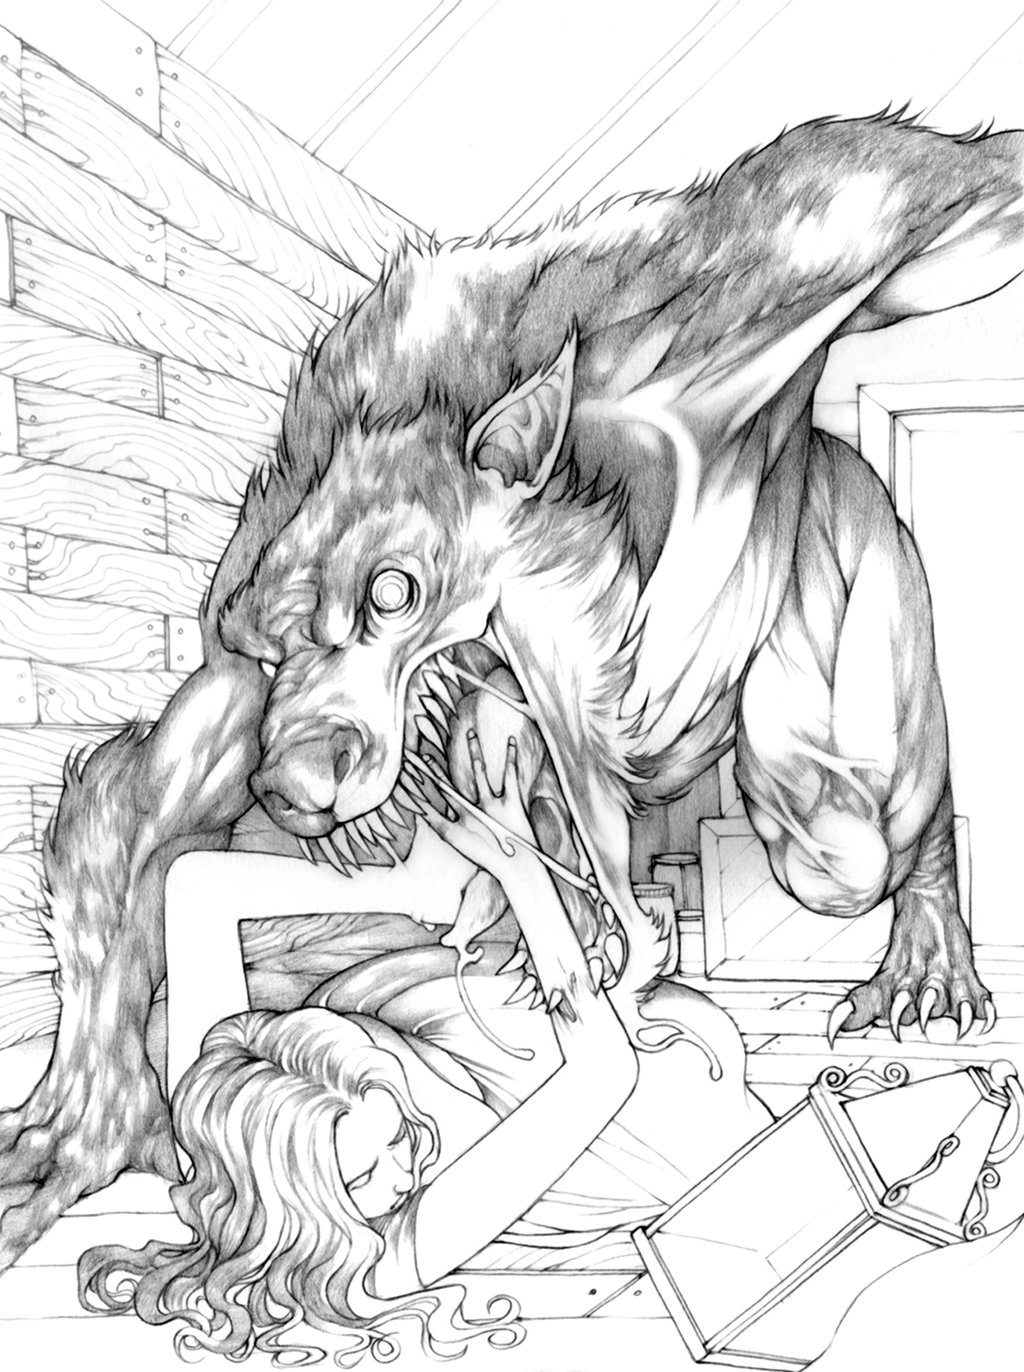 Drawn wolfman pencil drawing In pencil Cool photo#3 Drawings